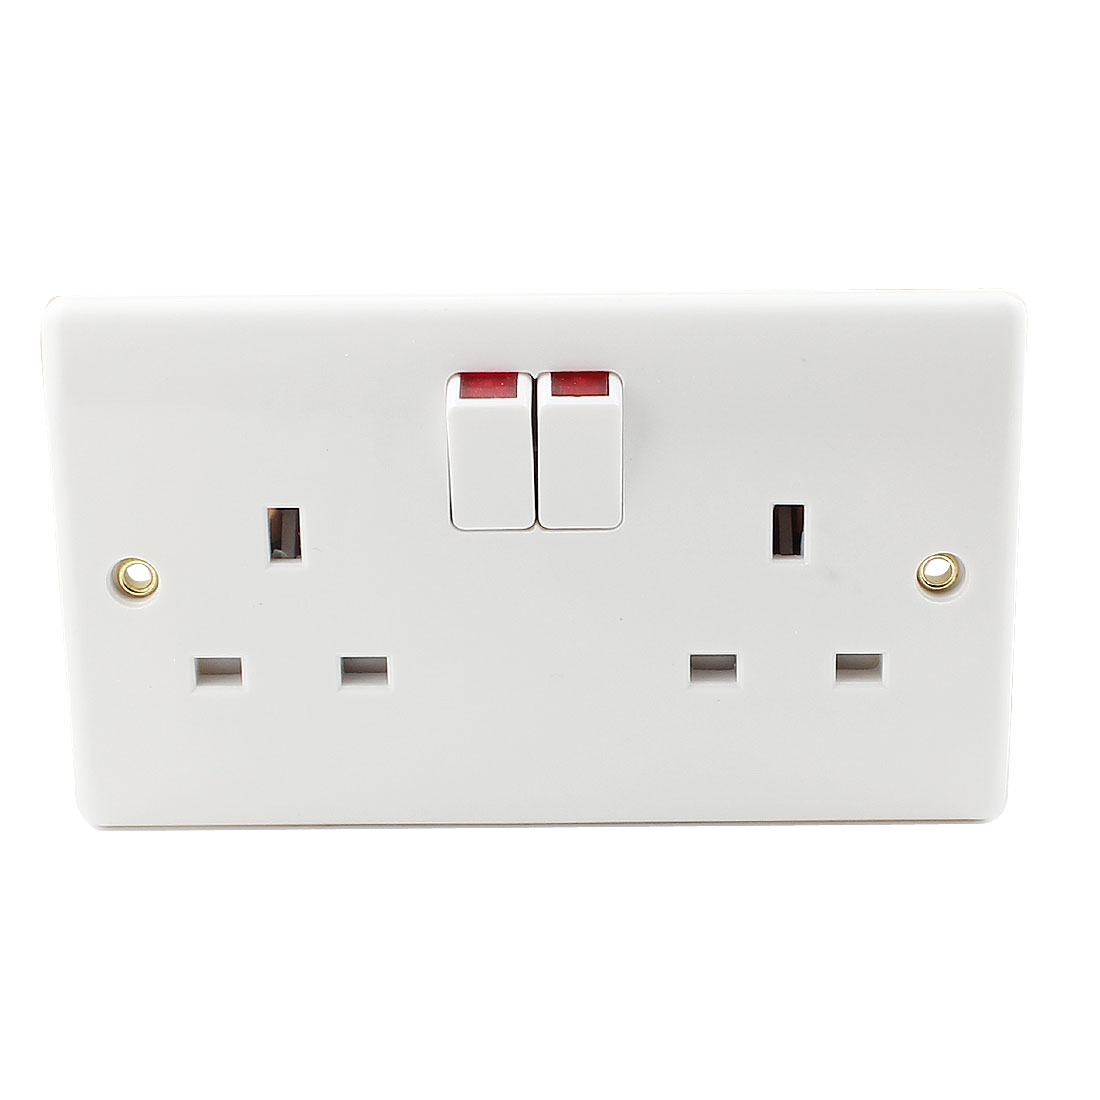 Dual AC 250V UK Socket 2 Gang Single Pole Wall Switched Outlet White 140mm x 86mm